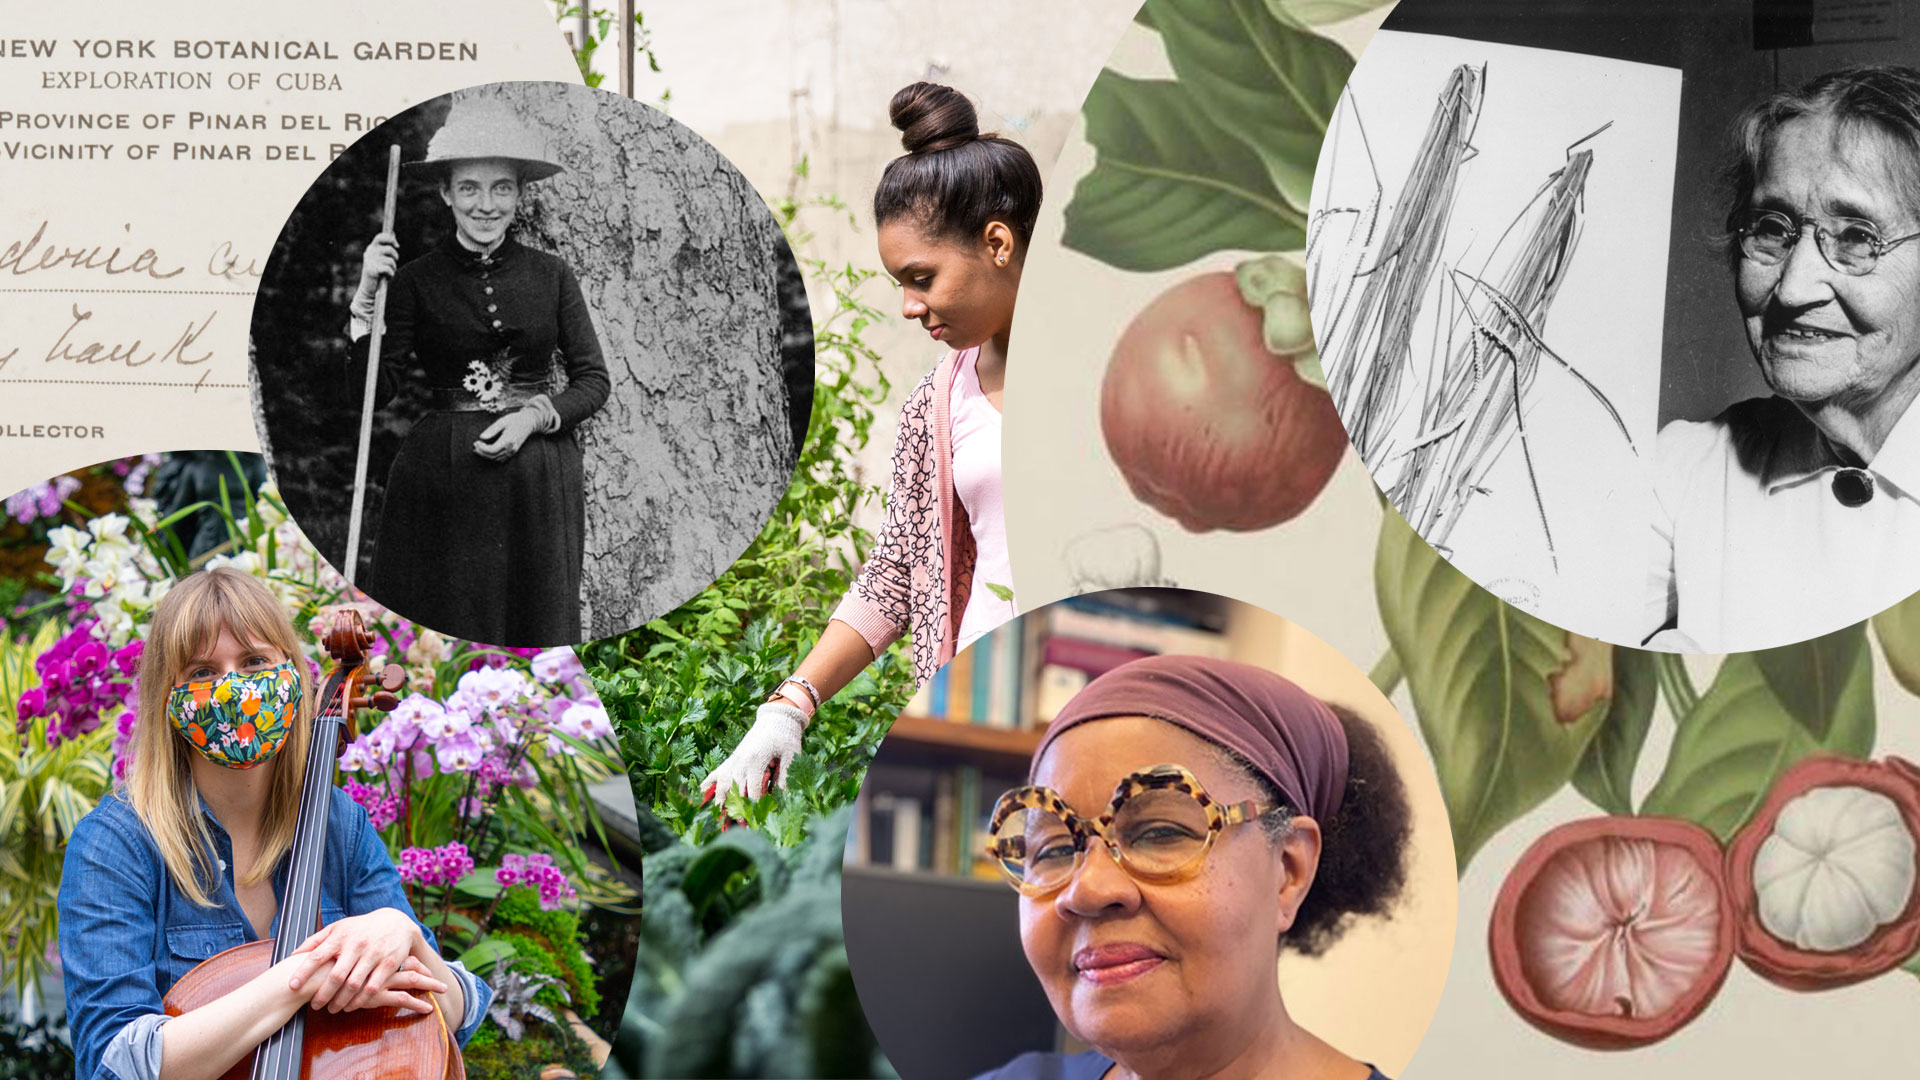 collage of images of plants and women in history